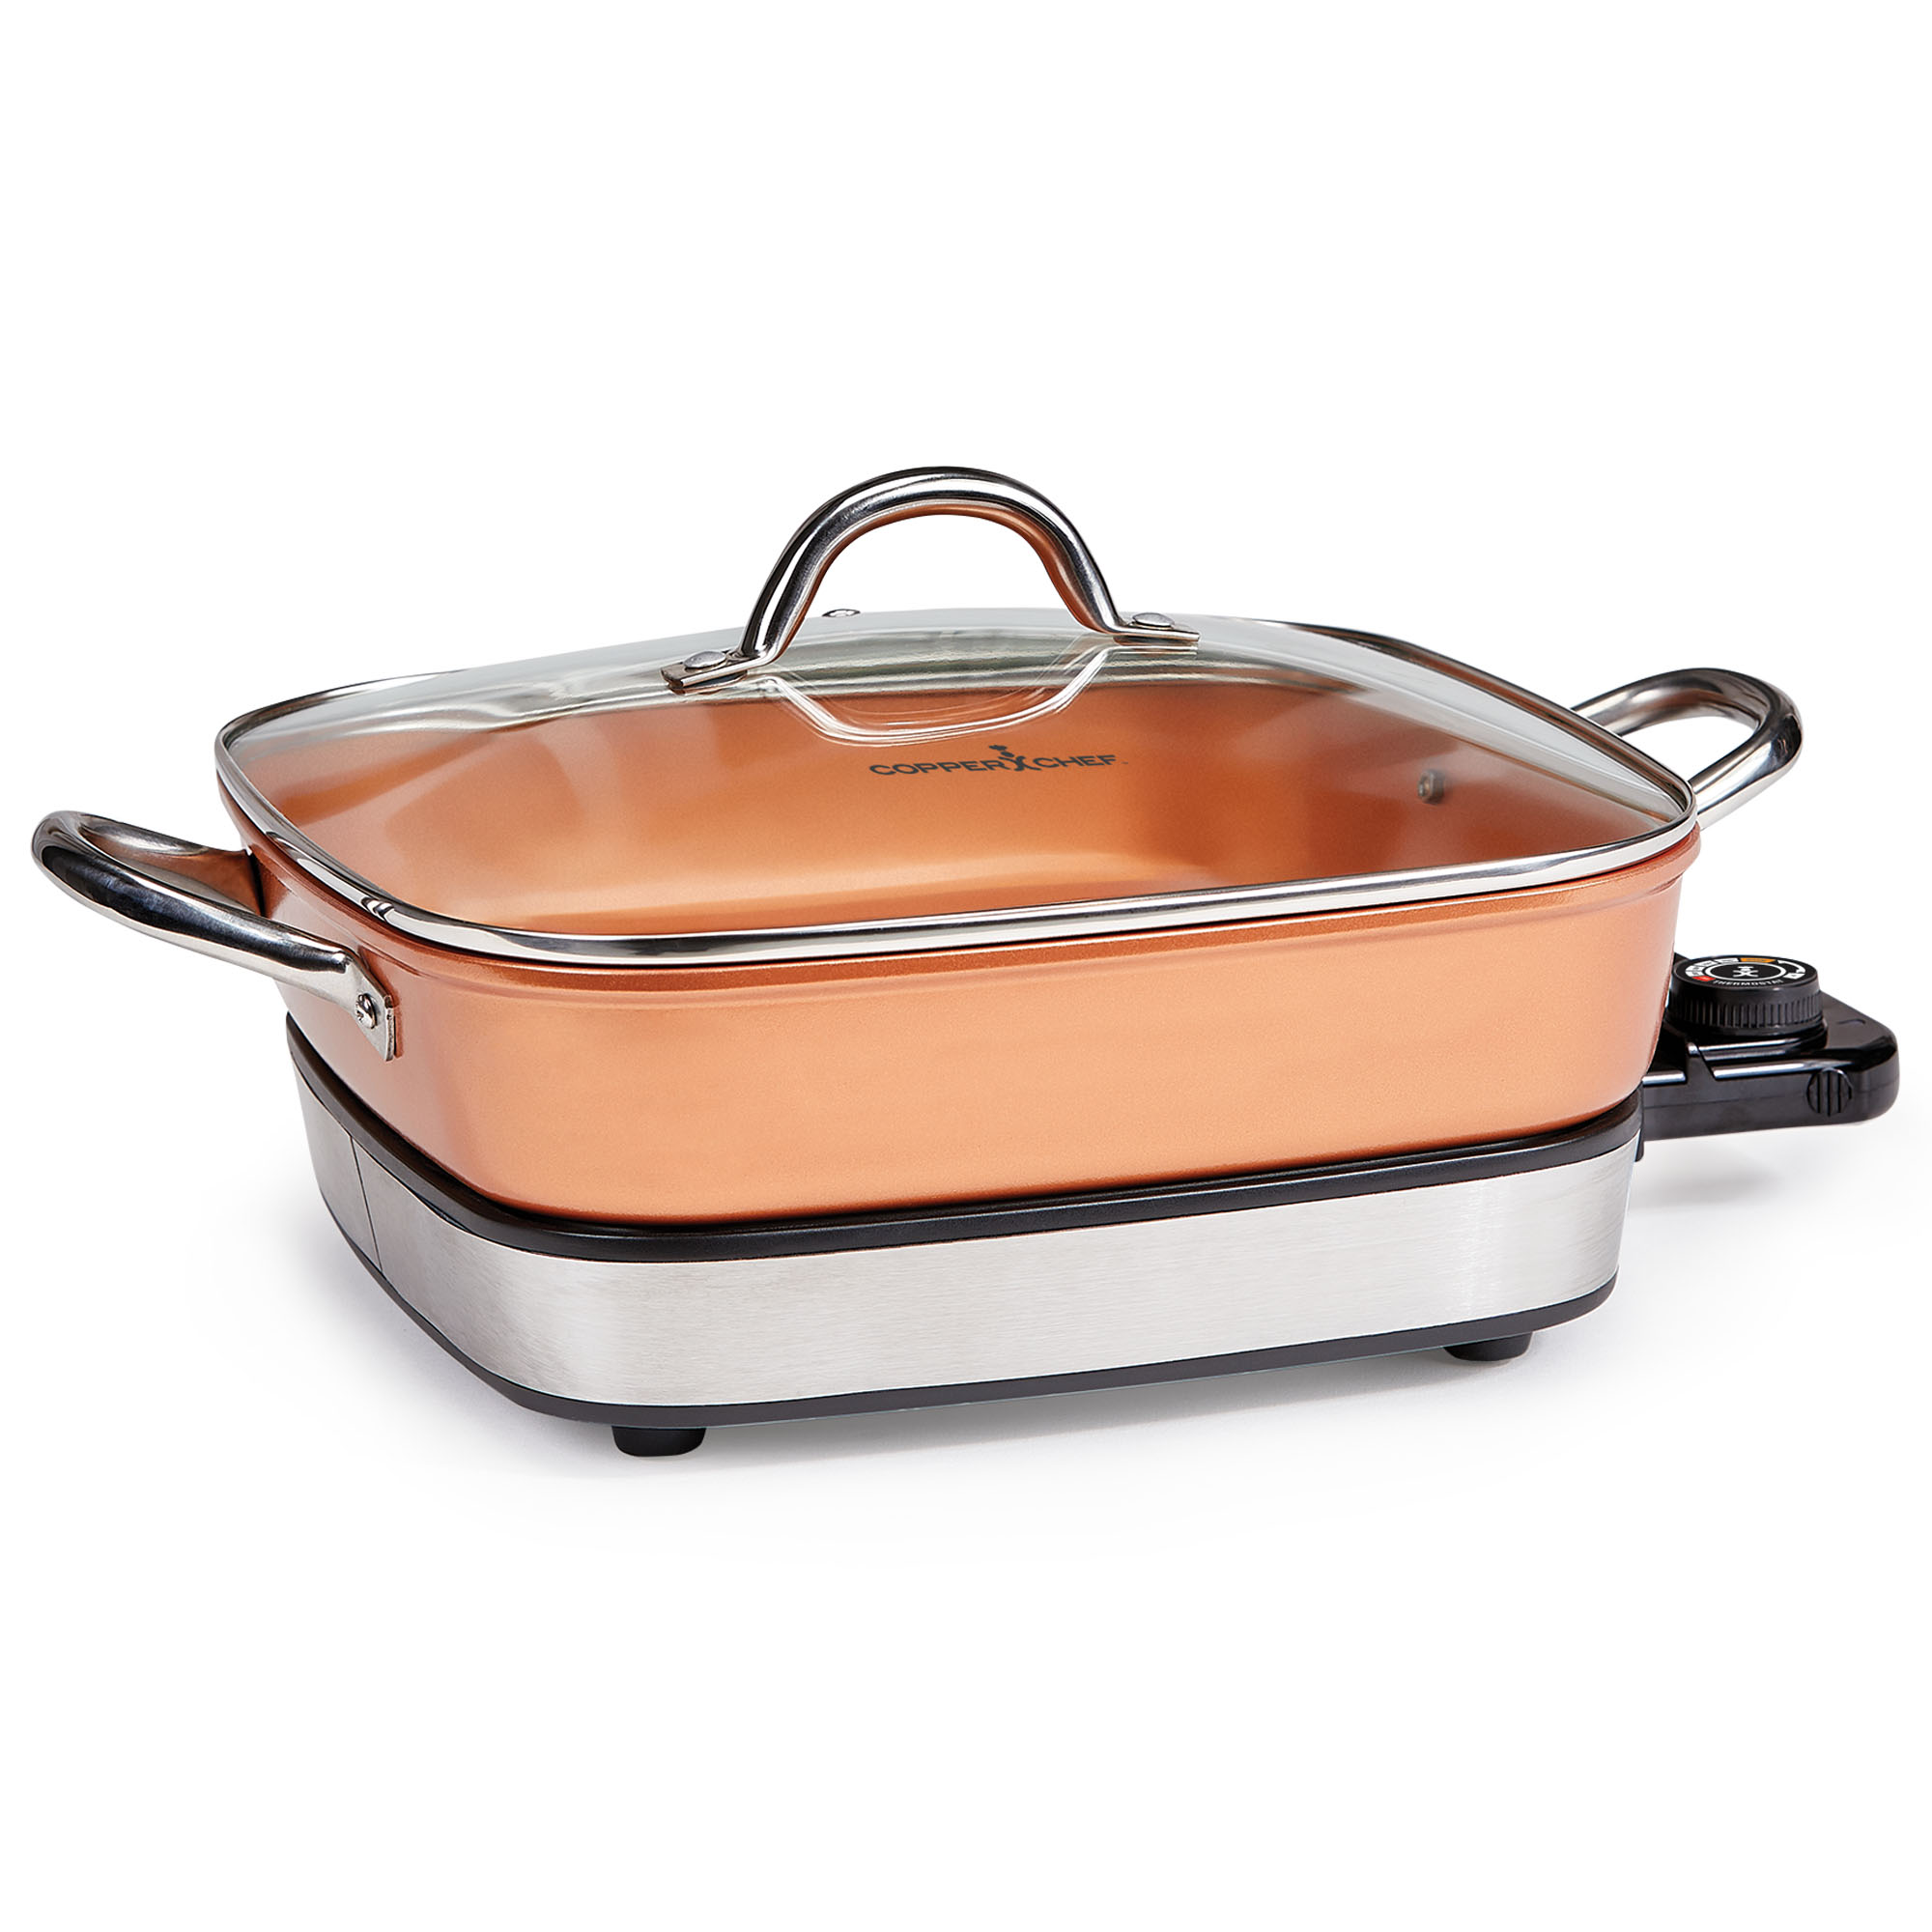 "Copper Chef 12"" Removable Electric Skillet"